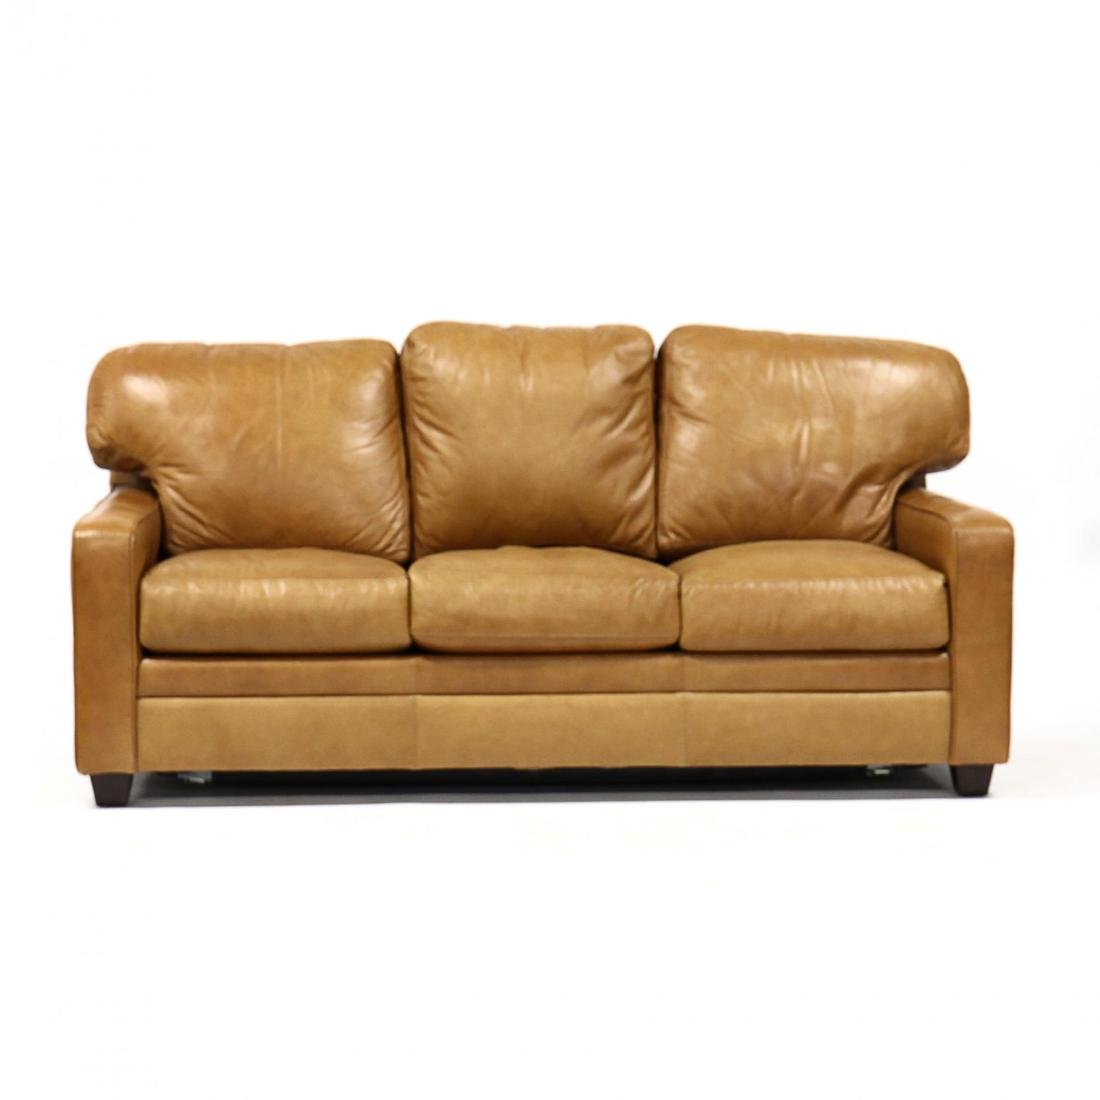 Bradington Young, Leather Upholstered Sleeper Sofa